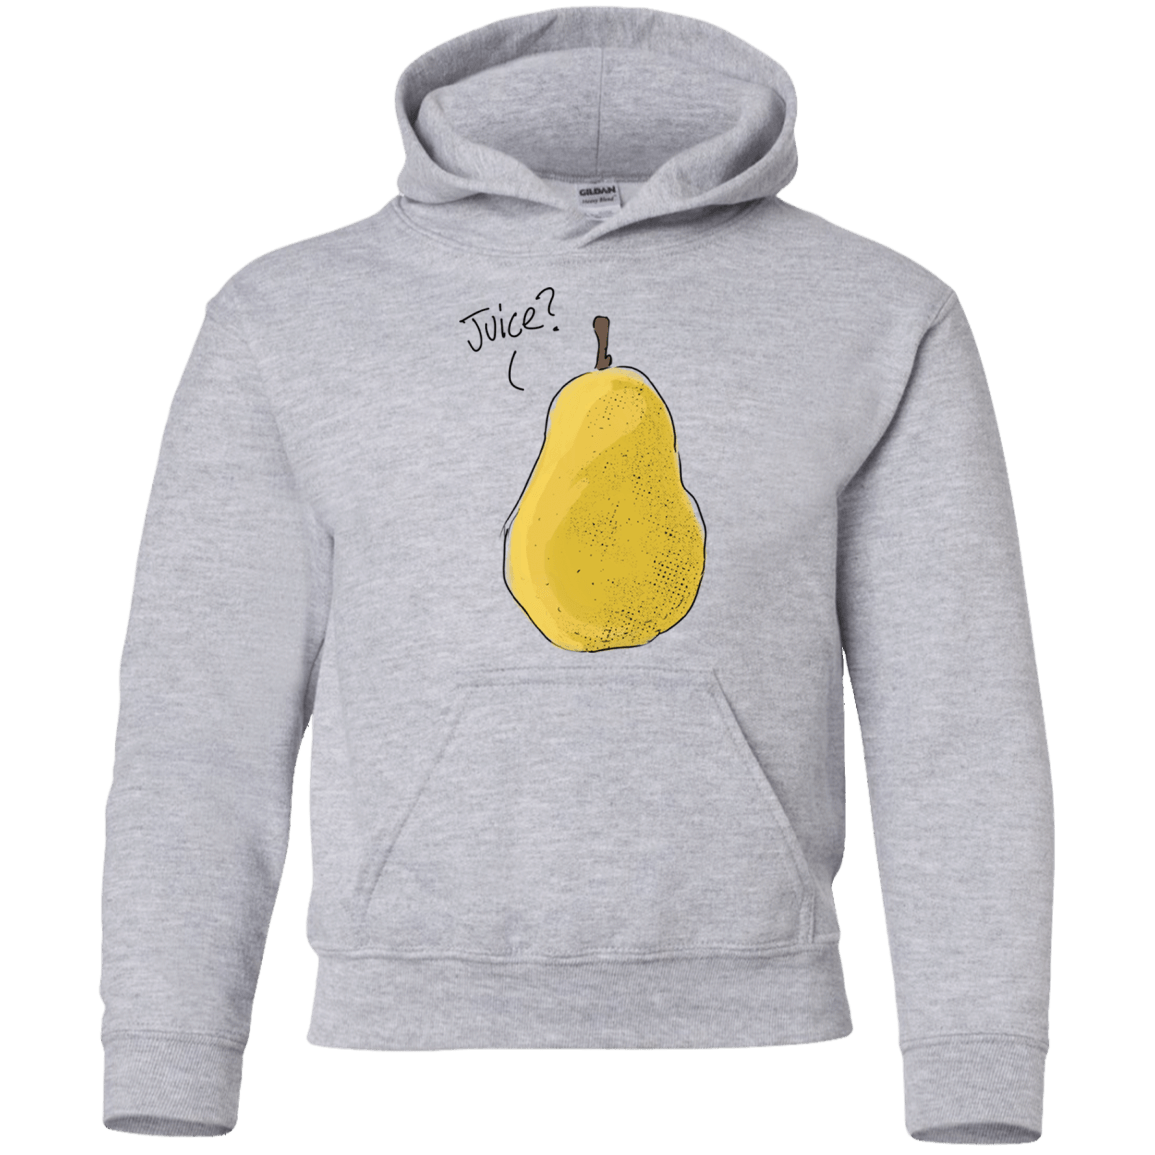 Juice? Youth Pullover Hoodie